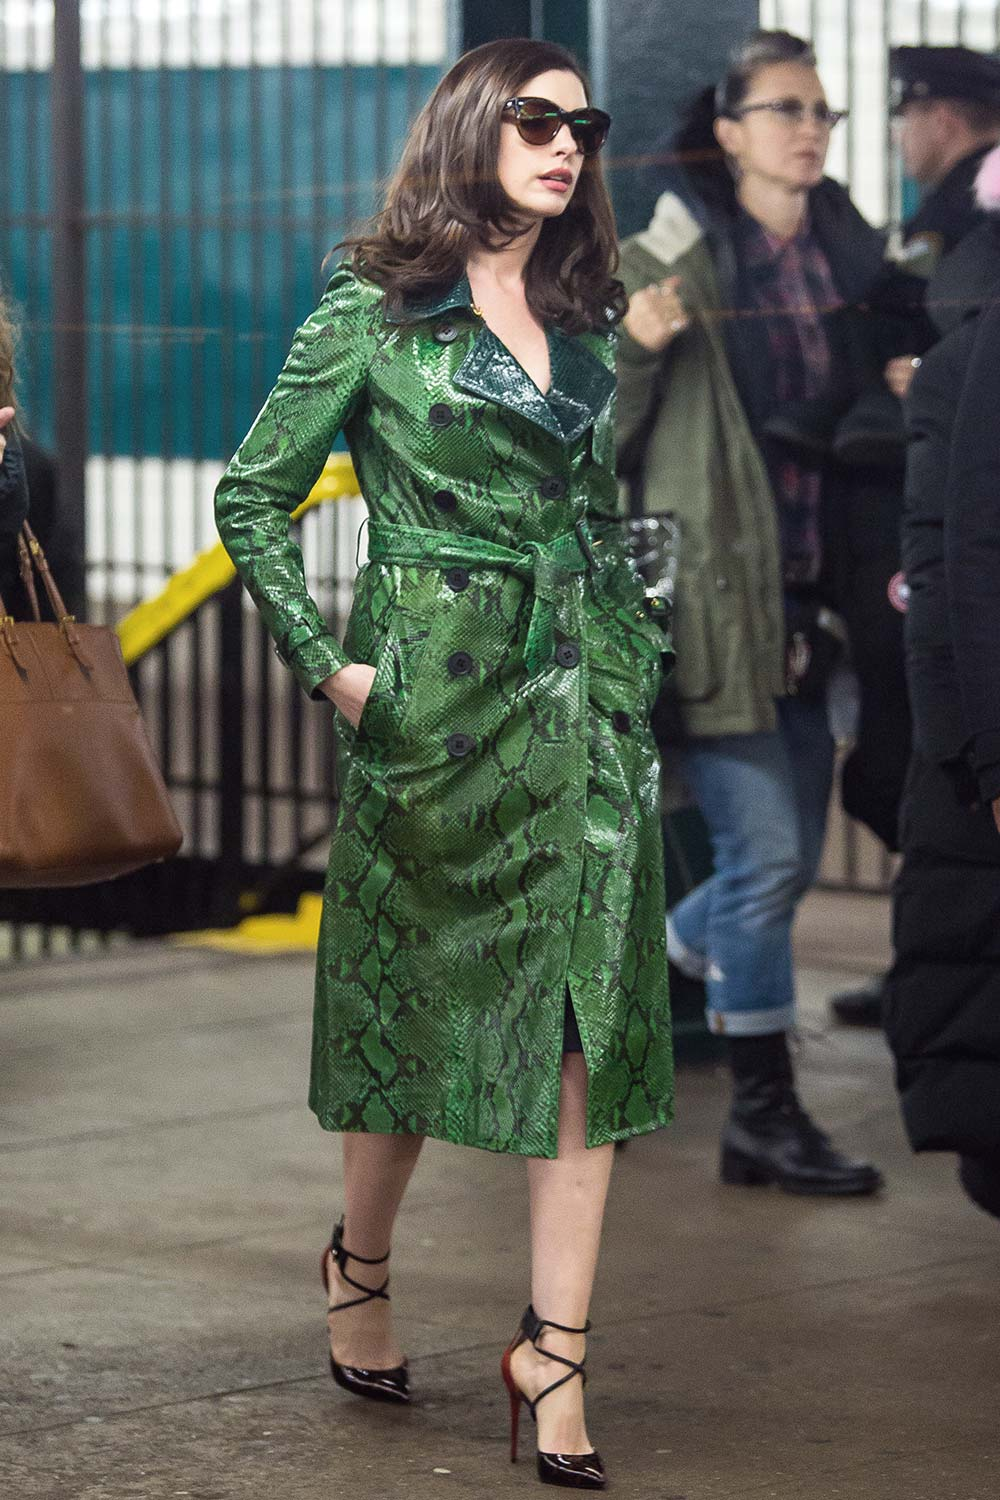 Anne Hathaway is seen filming Ocean's